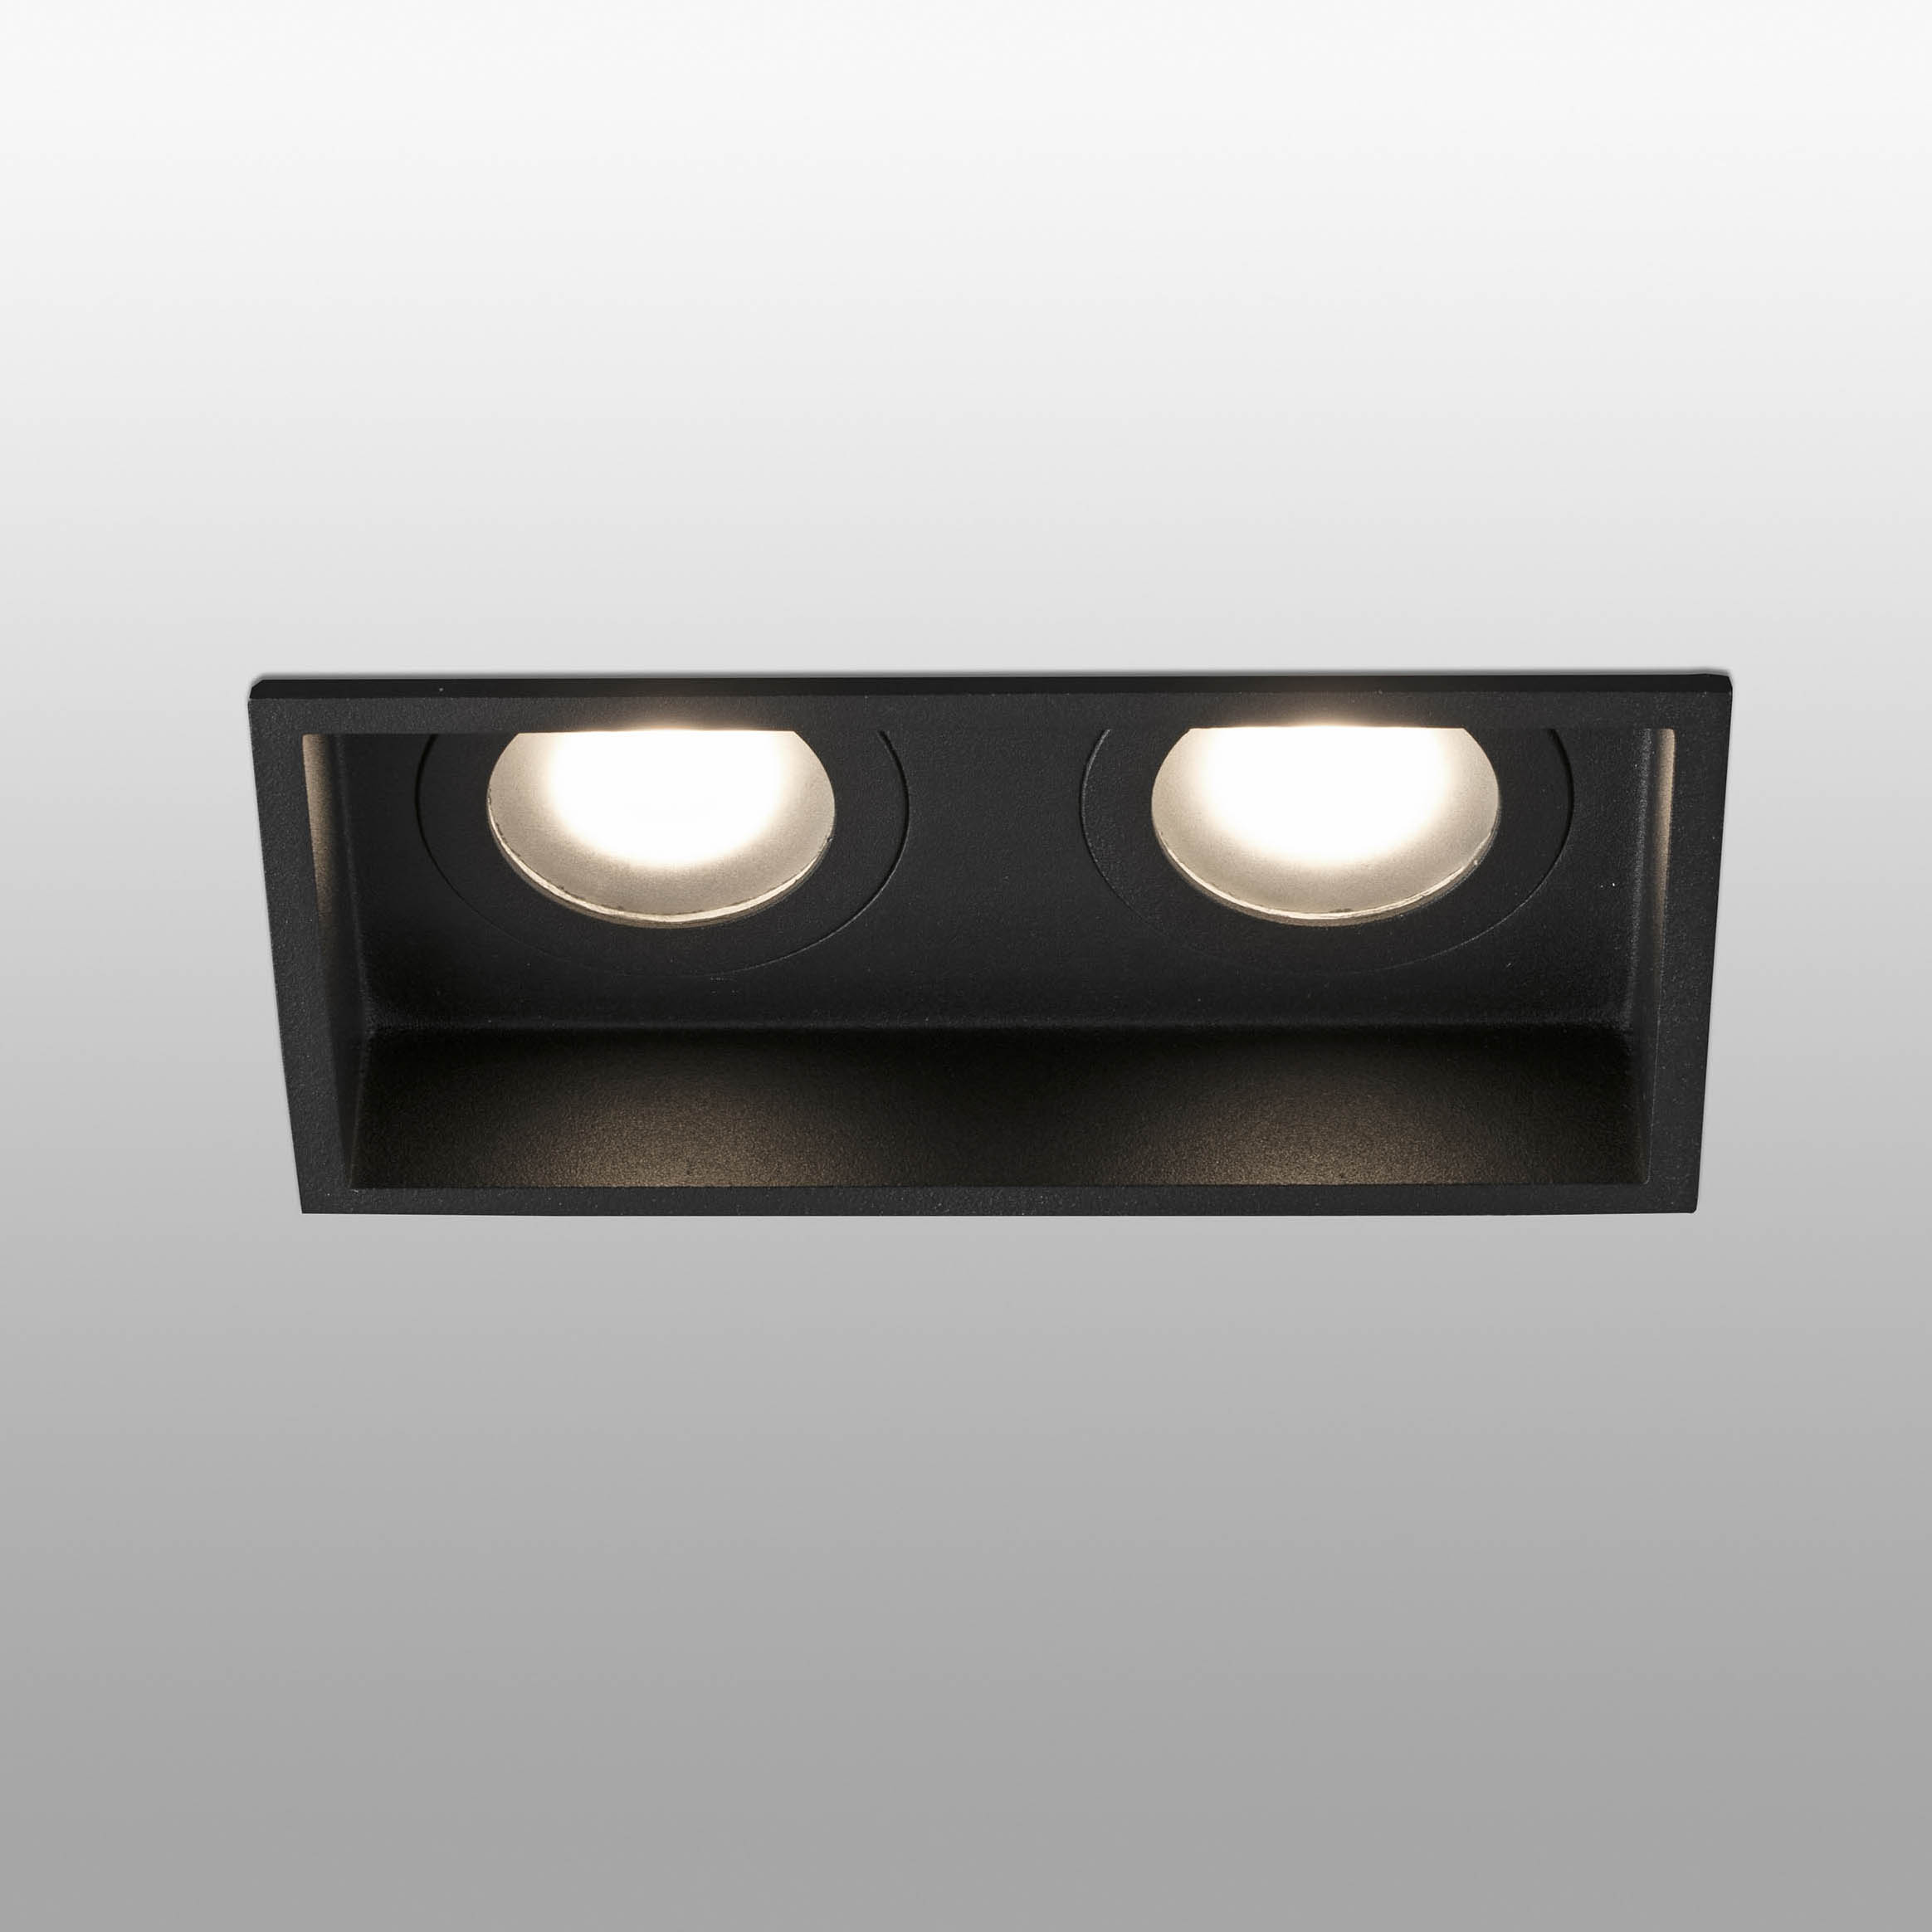 Foco doble IP44 LED GU10 171mm x 89mm negro 540125